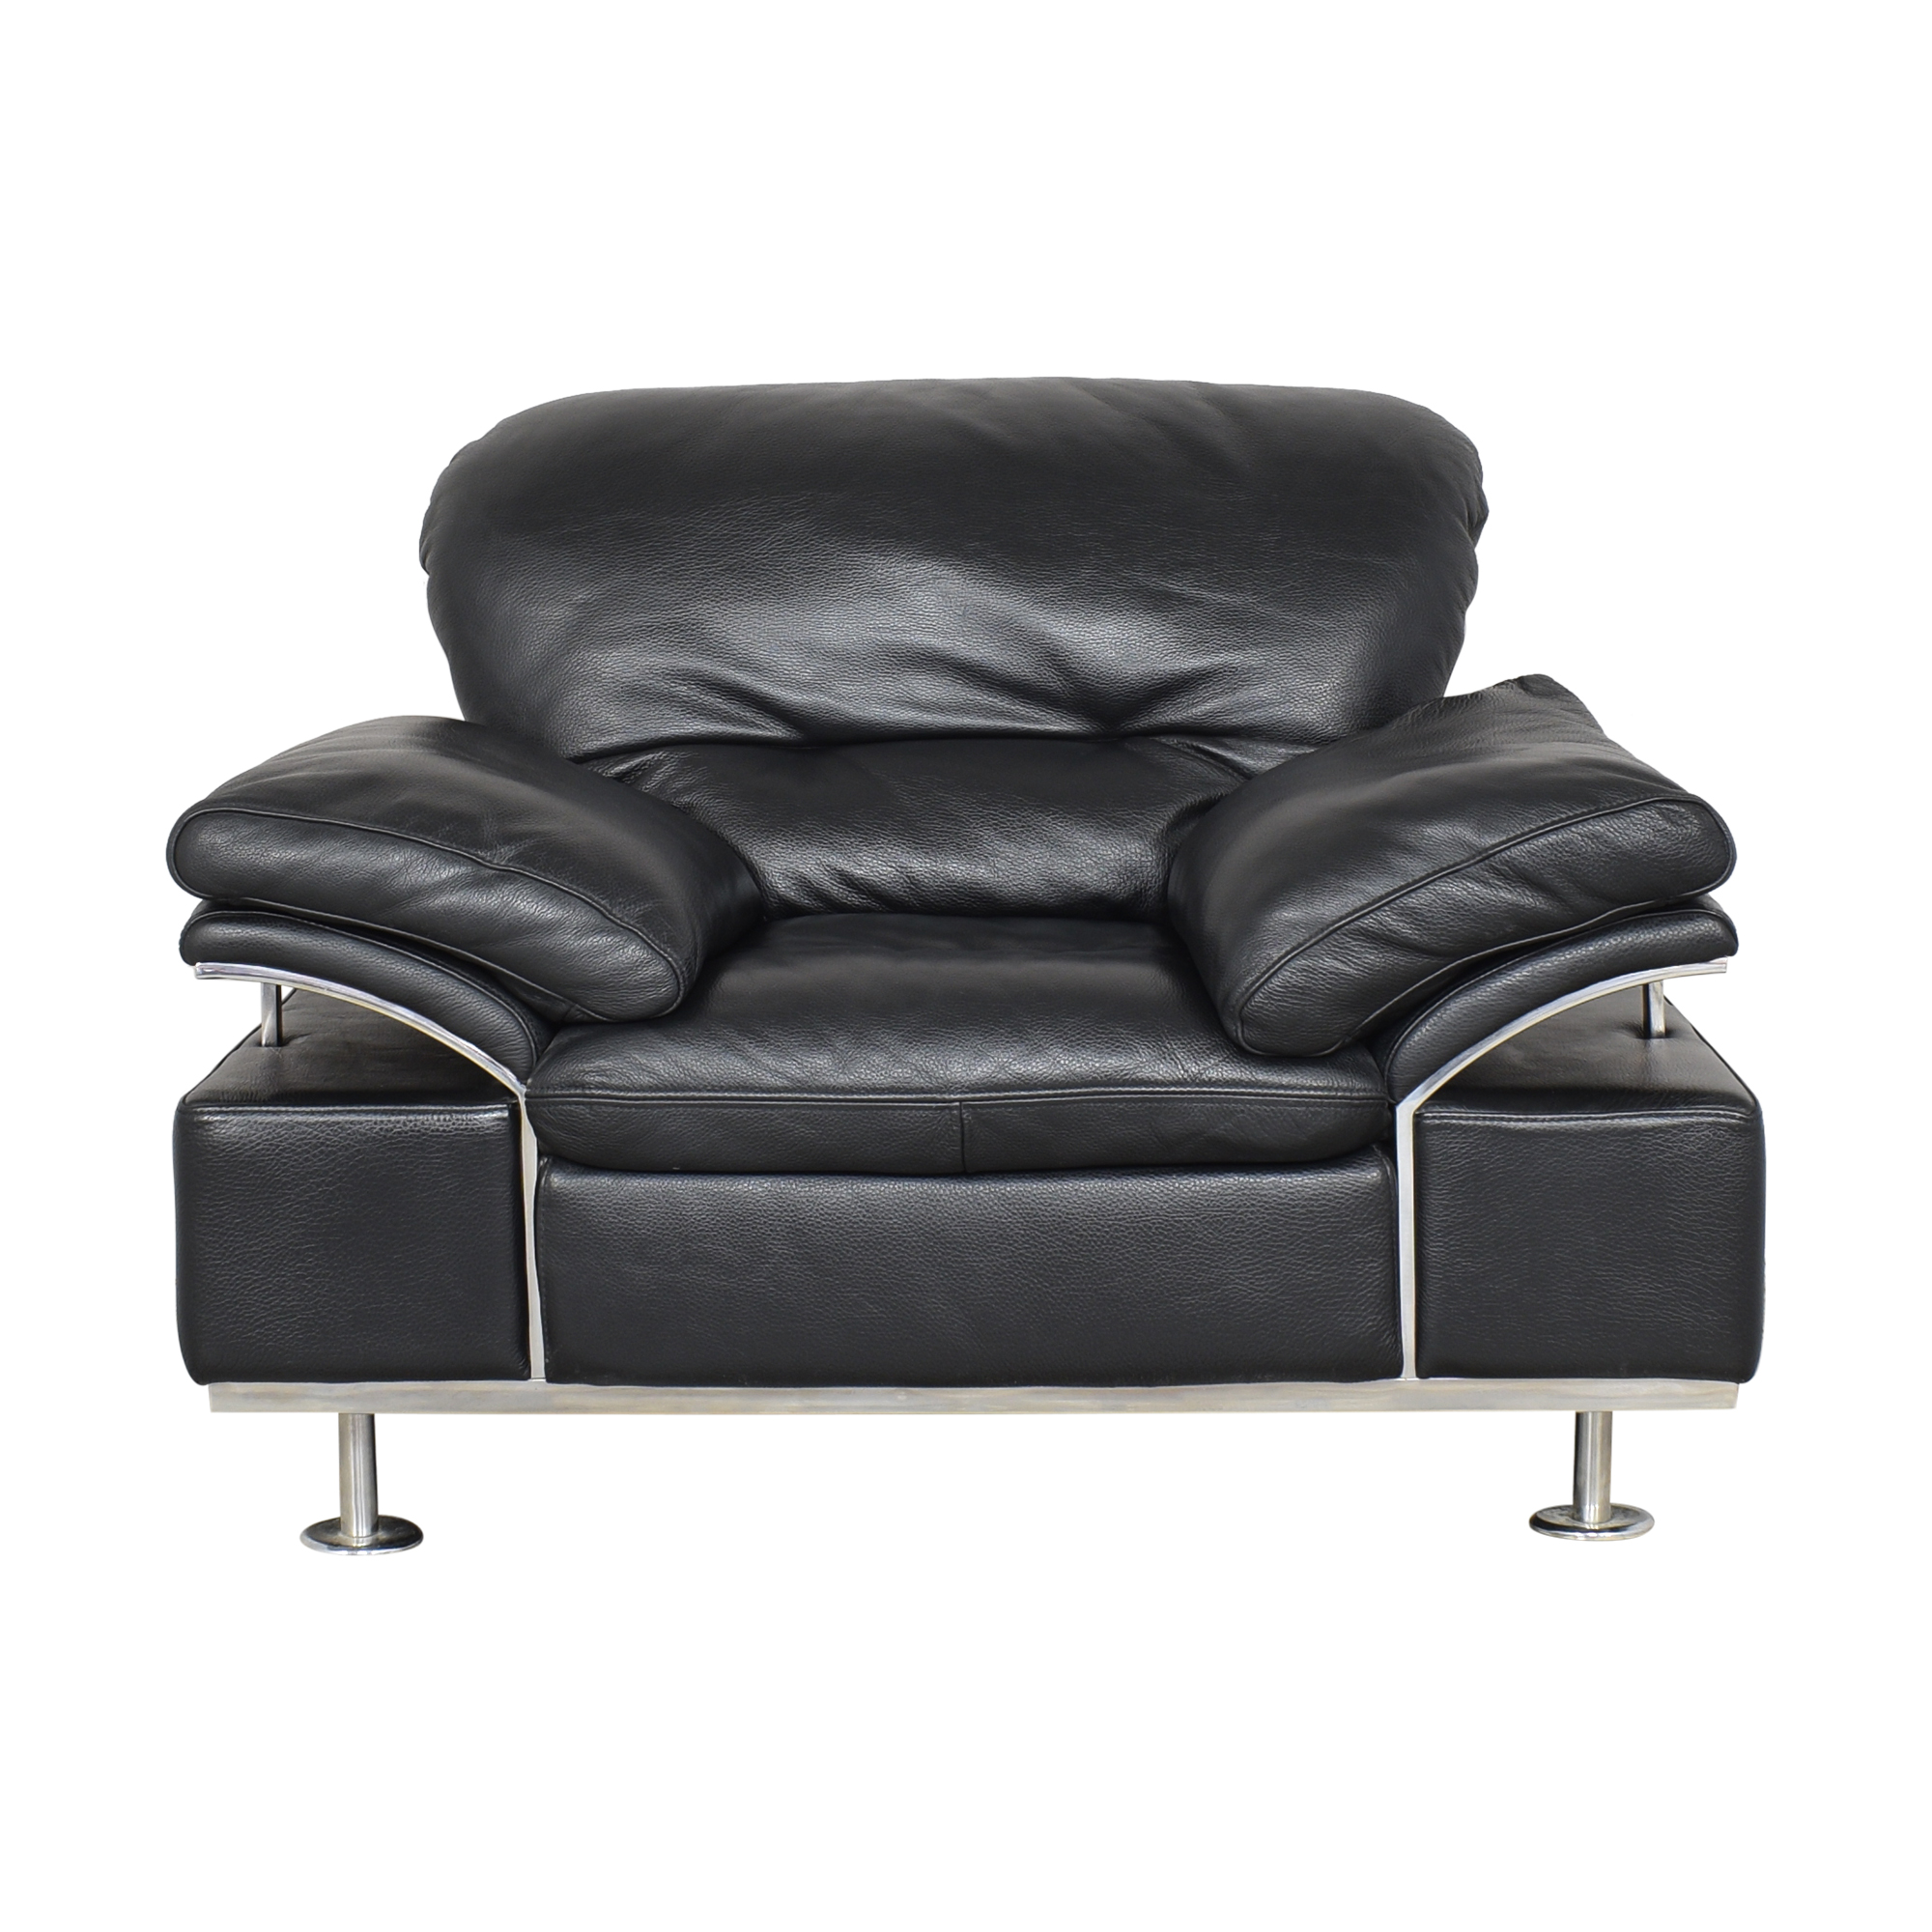 Oversized Accent Chair price